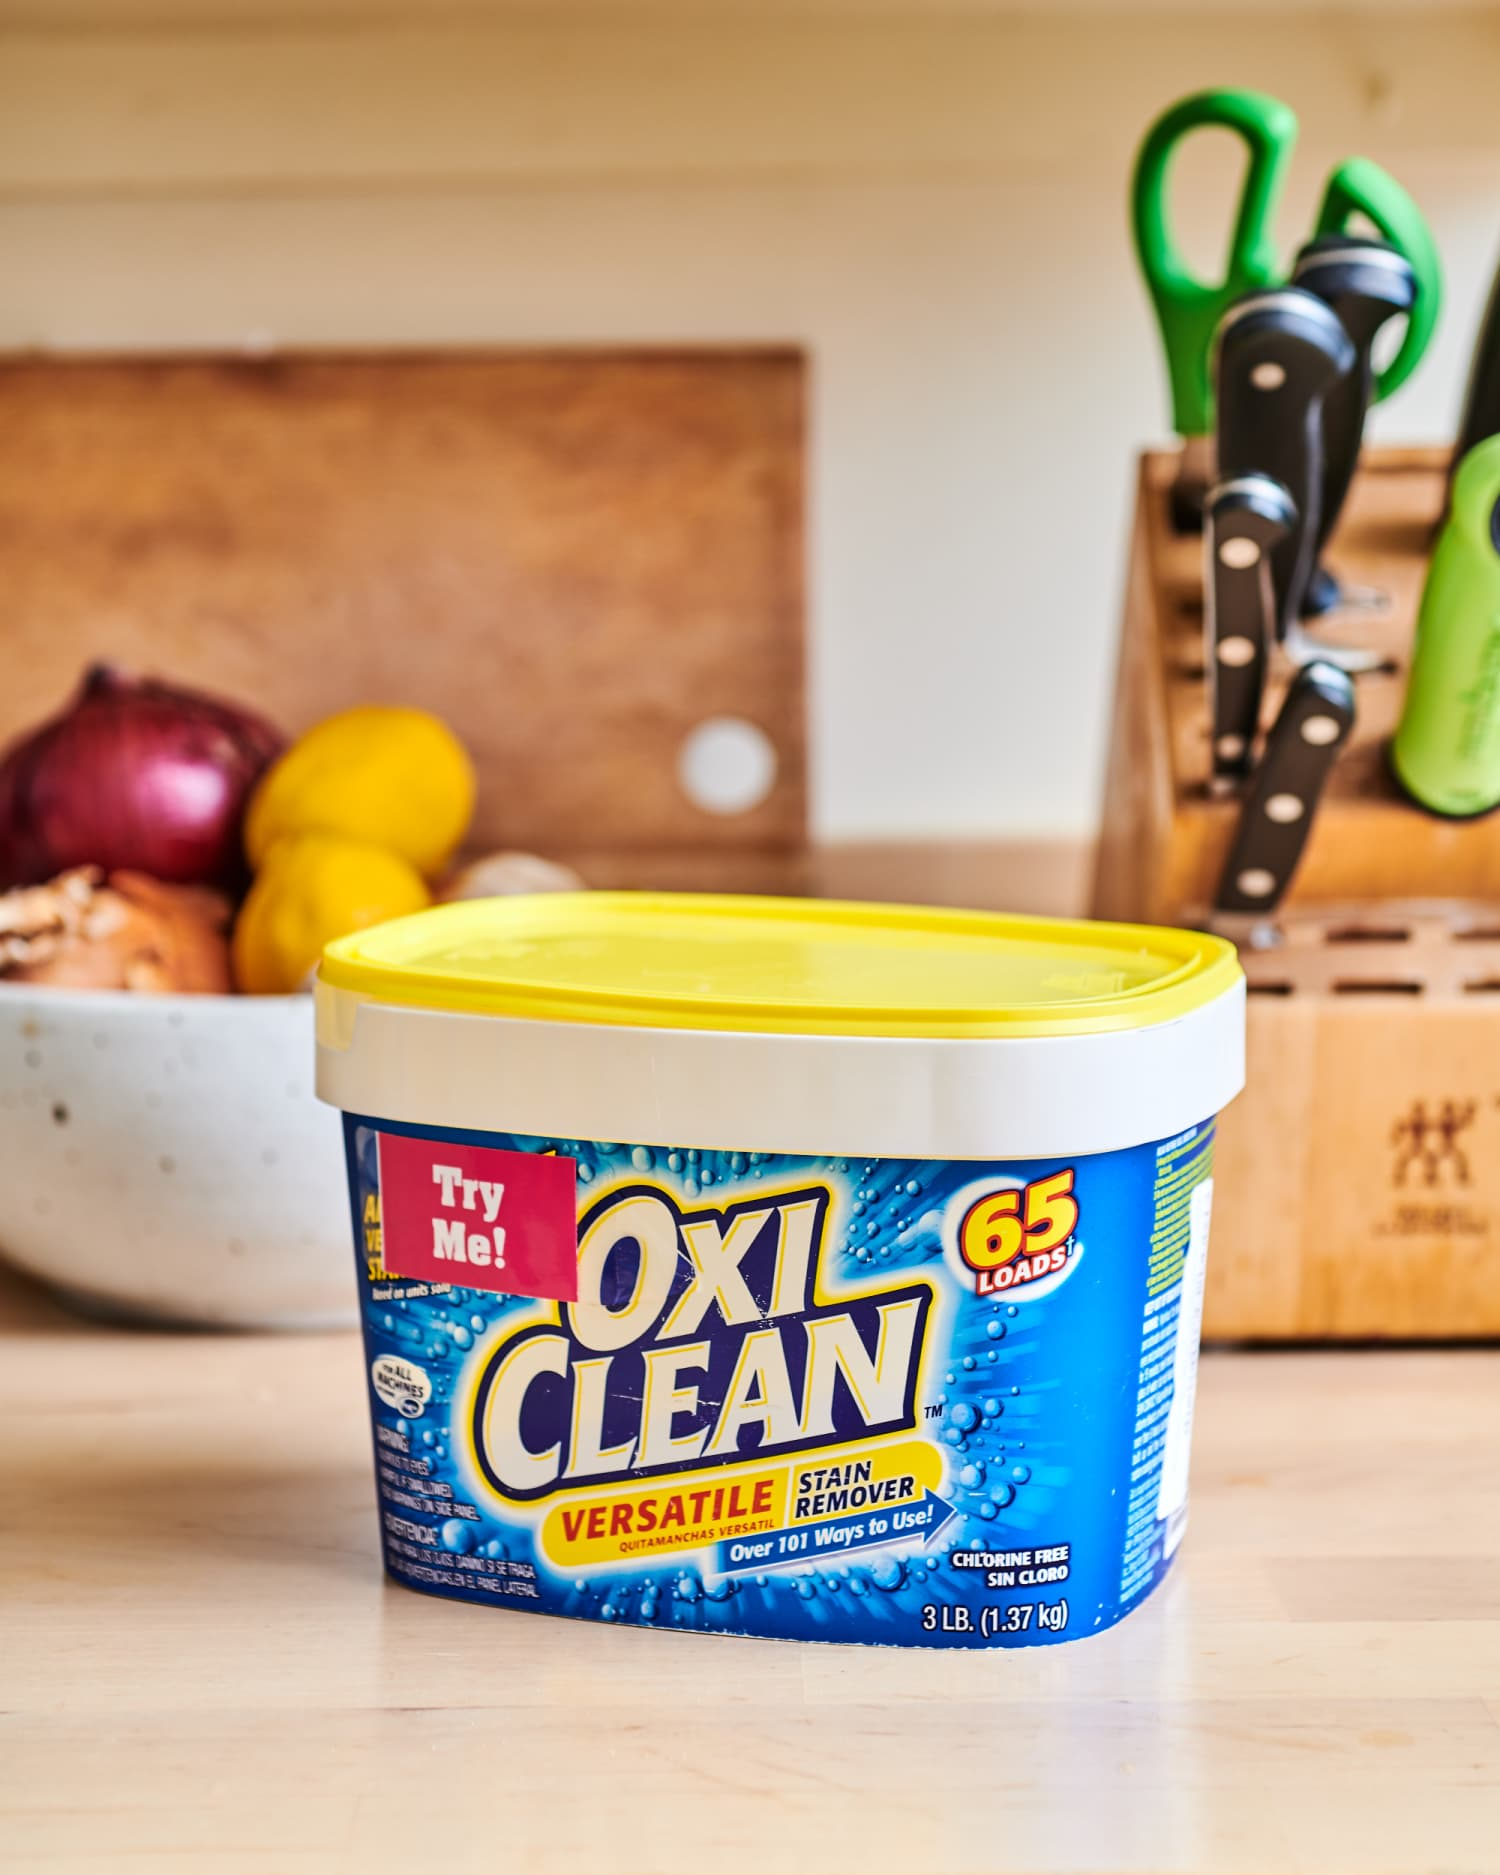 One Very Good Reason to Keep OxiClean in the Kitchen